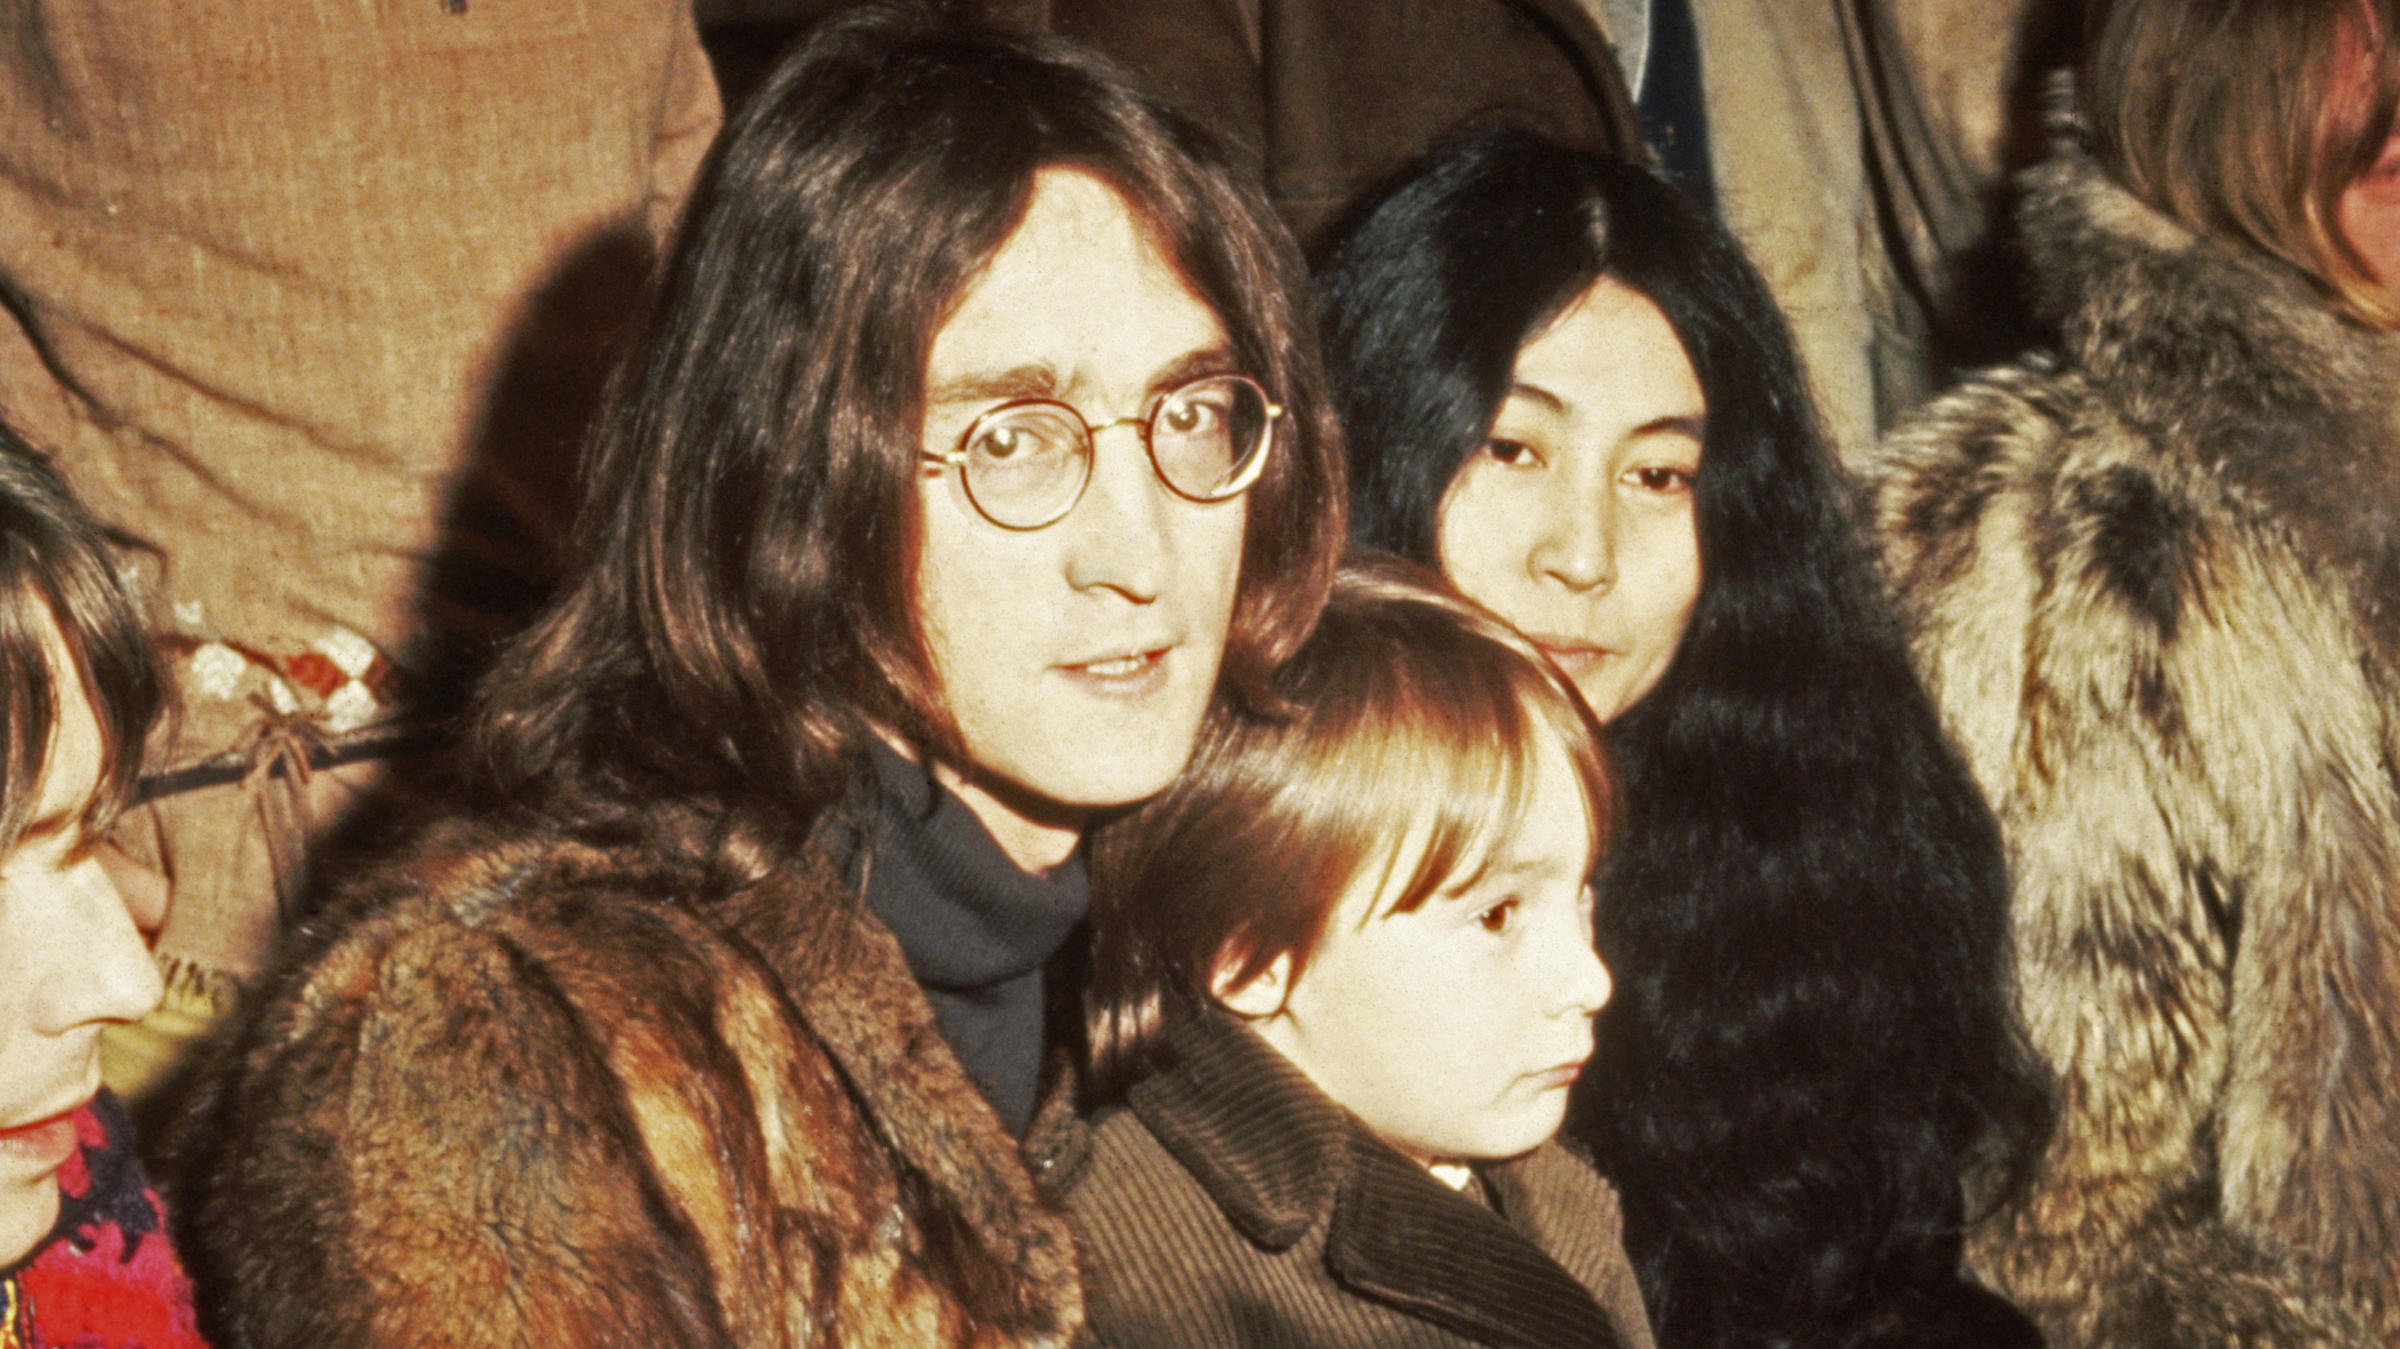 John Lennon With Yoko Ono And Son Julian At A 1968 Press Conference Internel Studios In Stonebridge Park Wembley